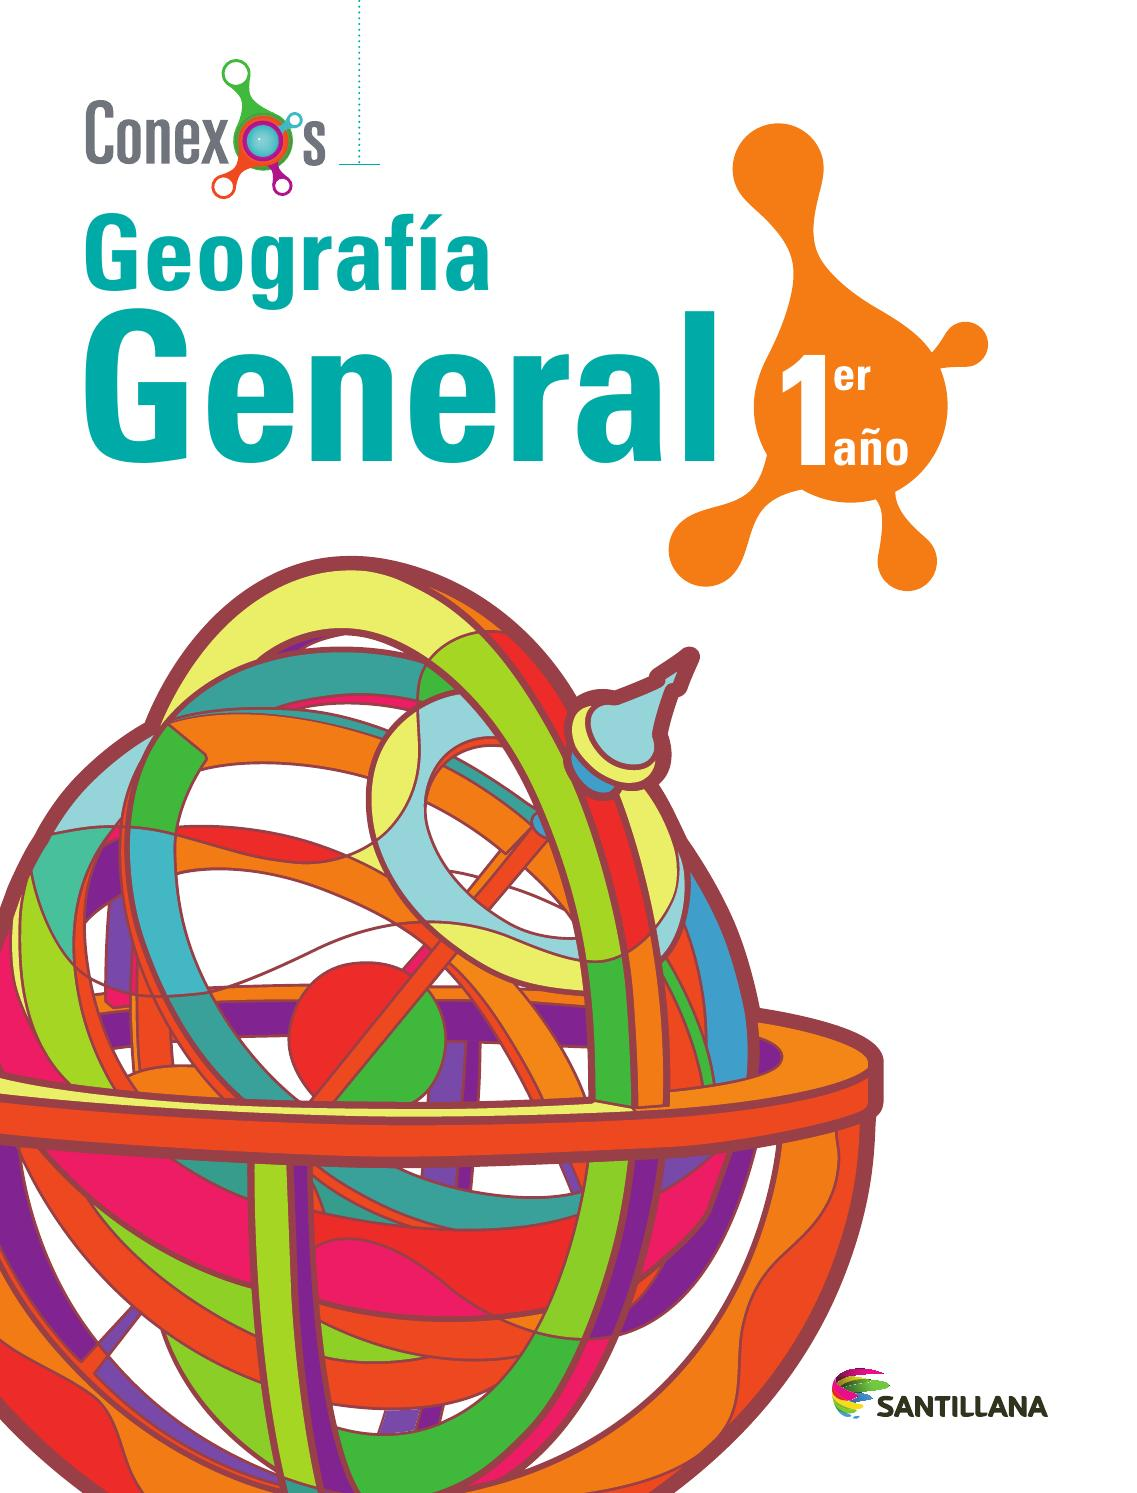 Geografa General 1er ao by SANTILLANA Venezuela  issuu